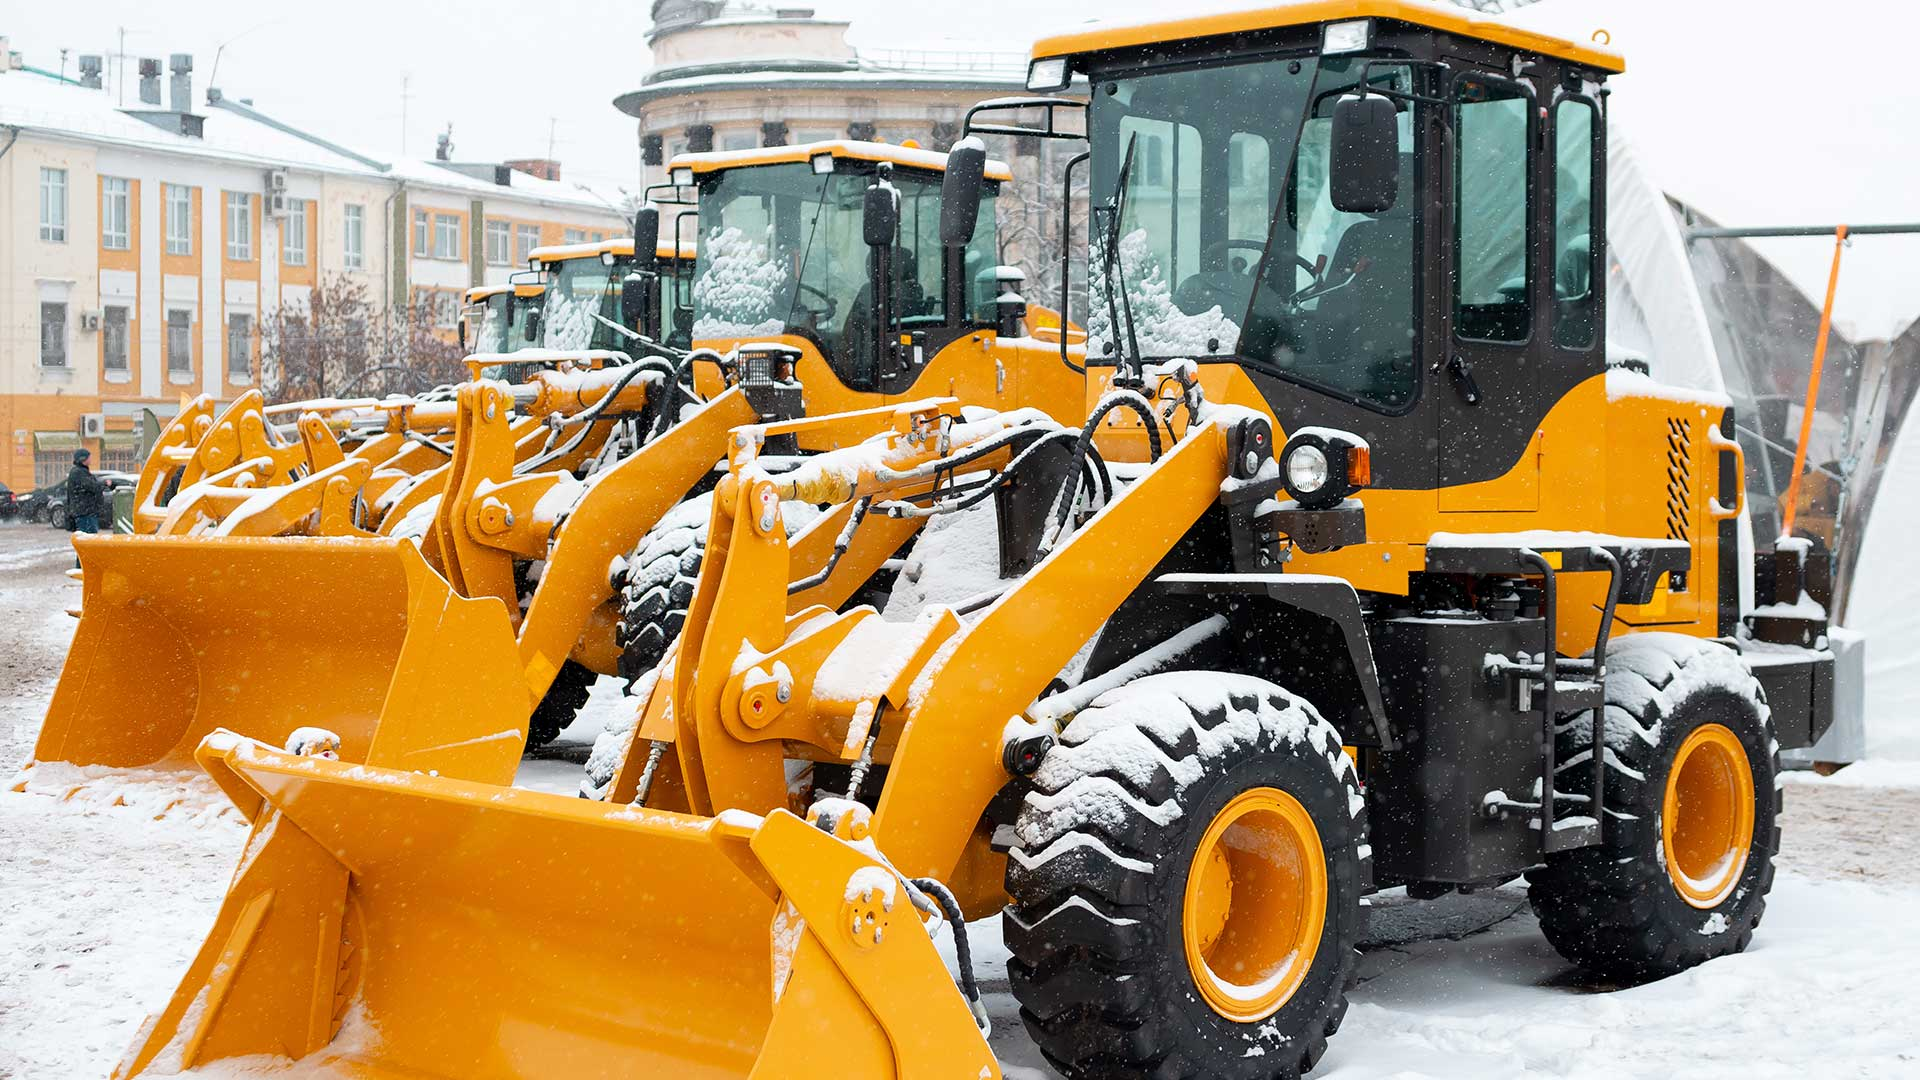 heavy equipment covered with snow